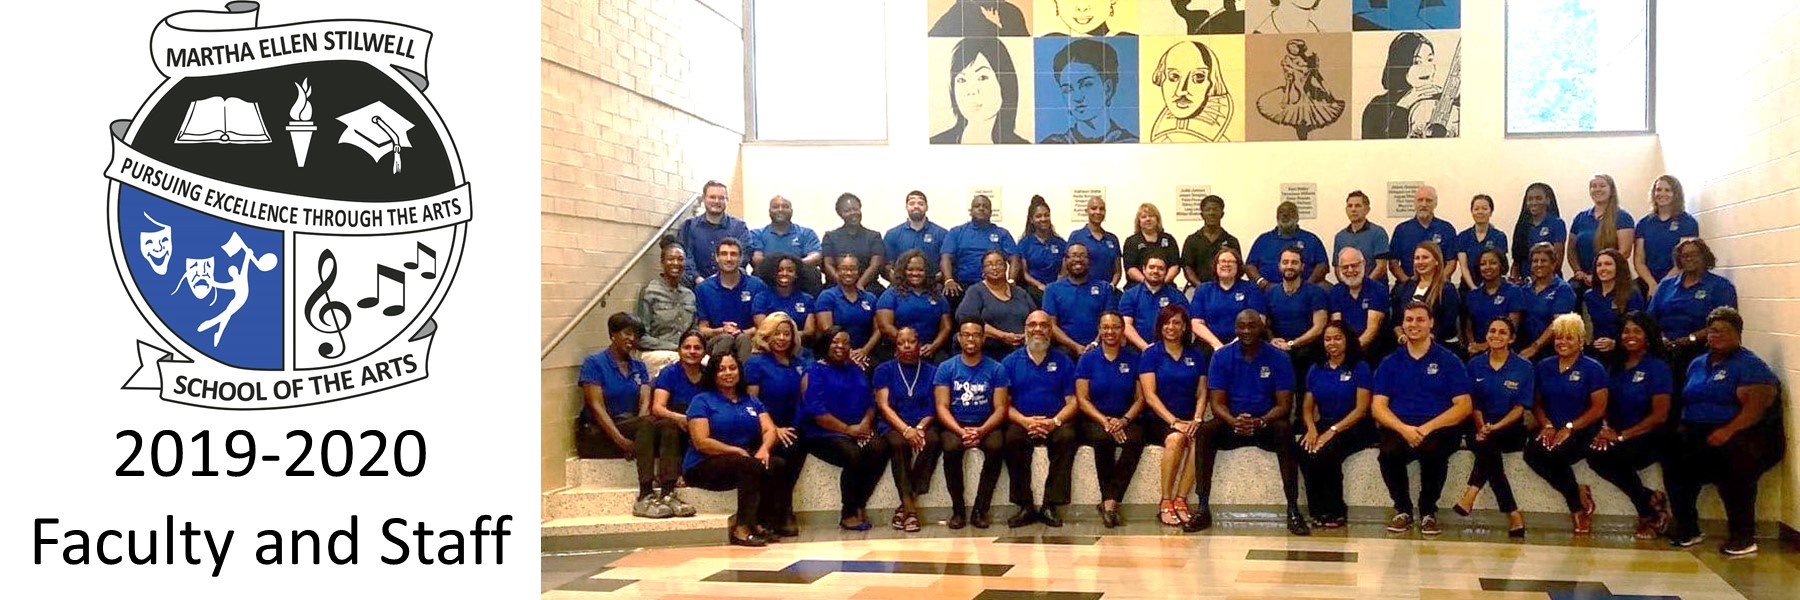 2019-2020 Faculty and Staff